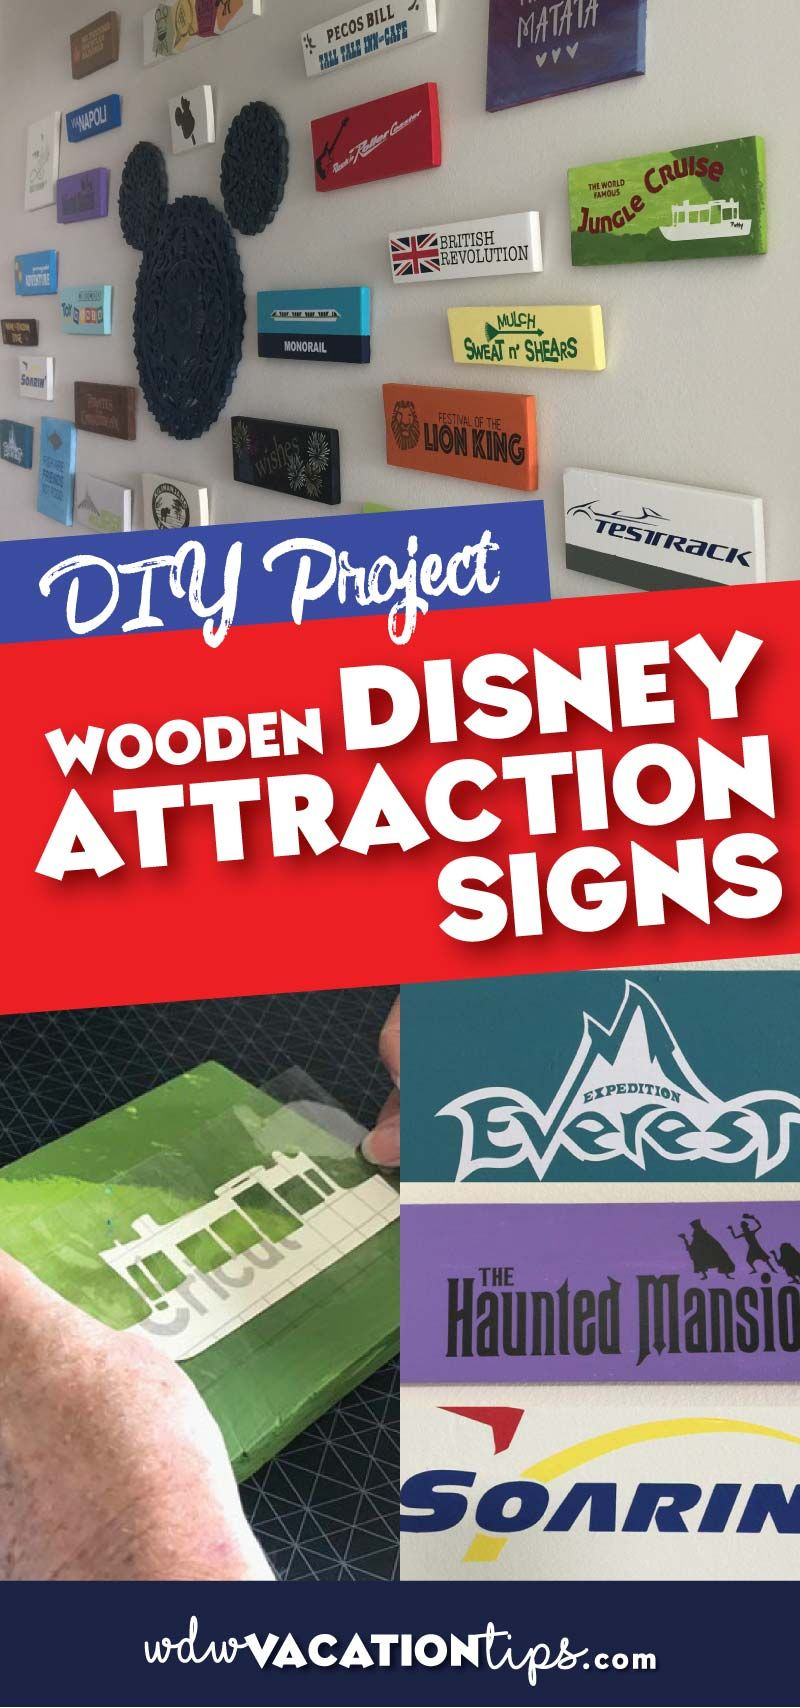 DIY Wooden Disney Attraction Signs • WDW Vacation Tips